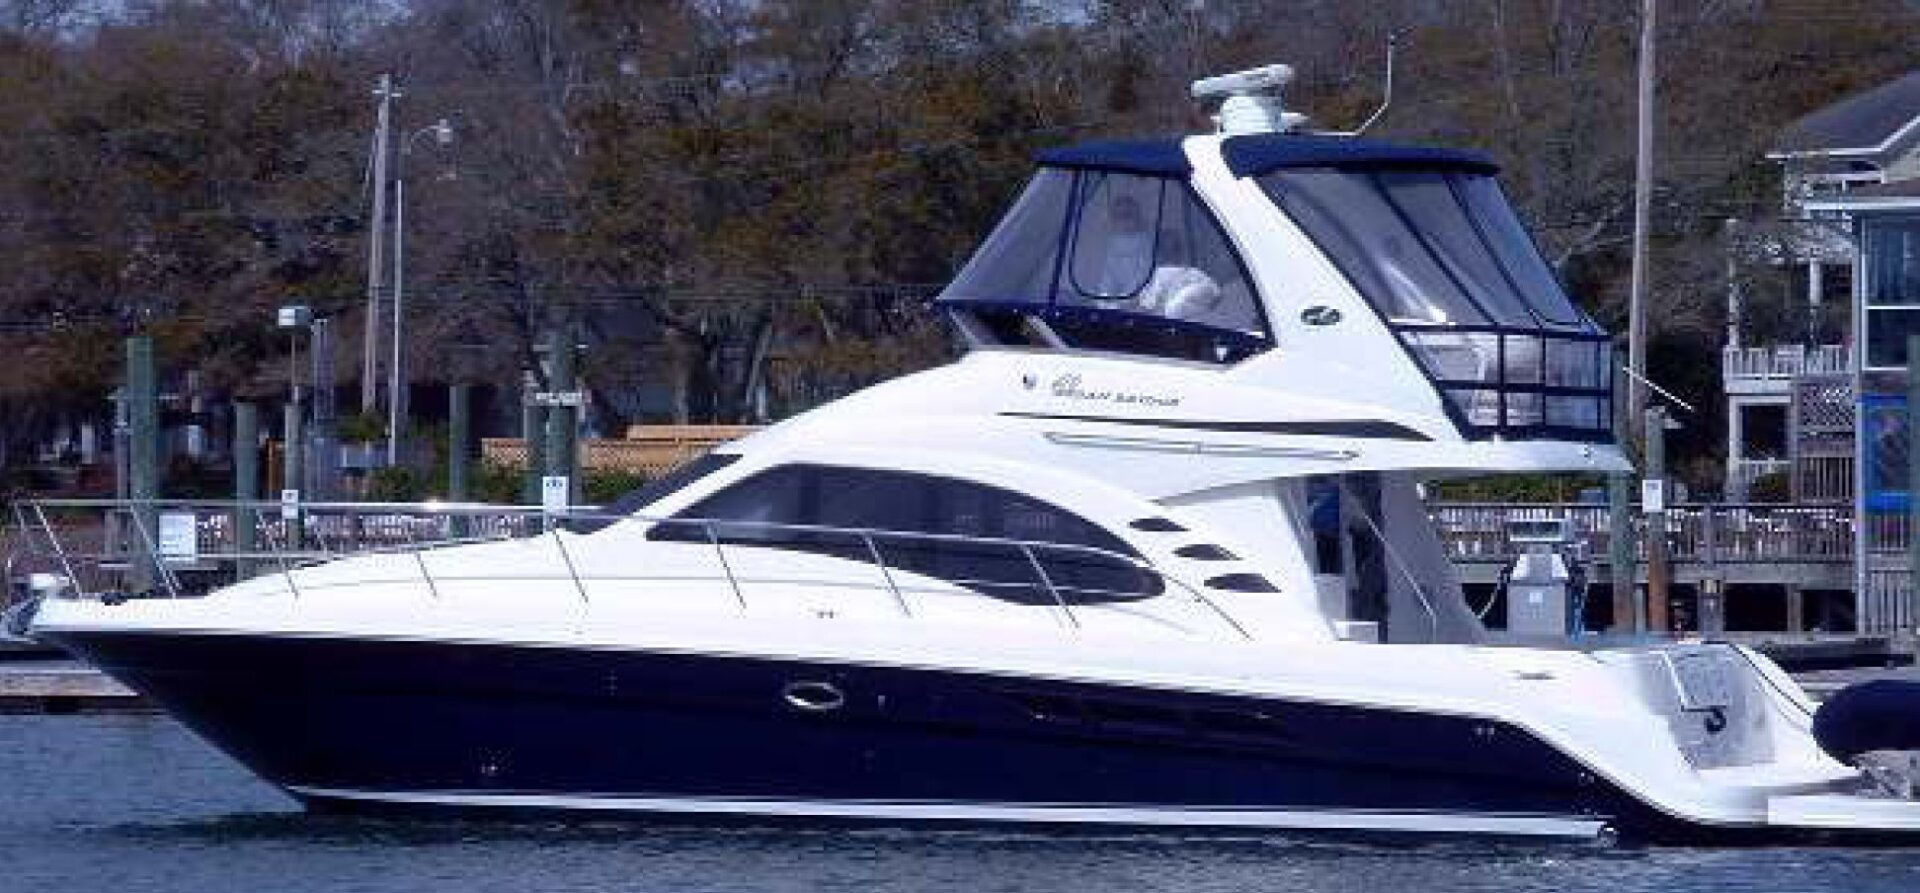 A South Bend 44 Seeray yacht